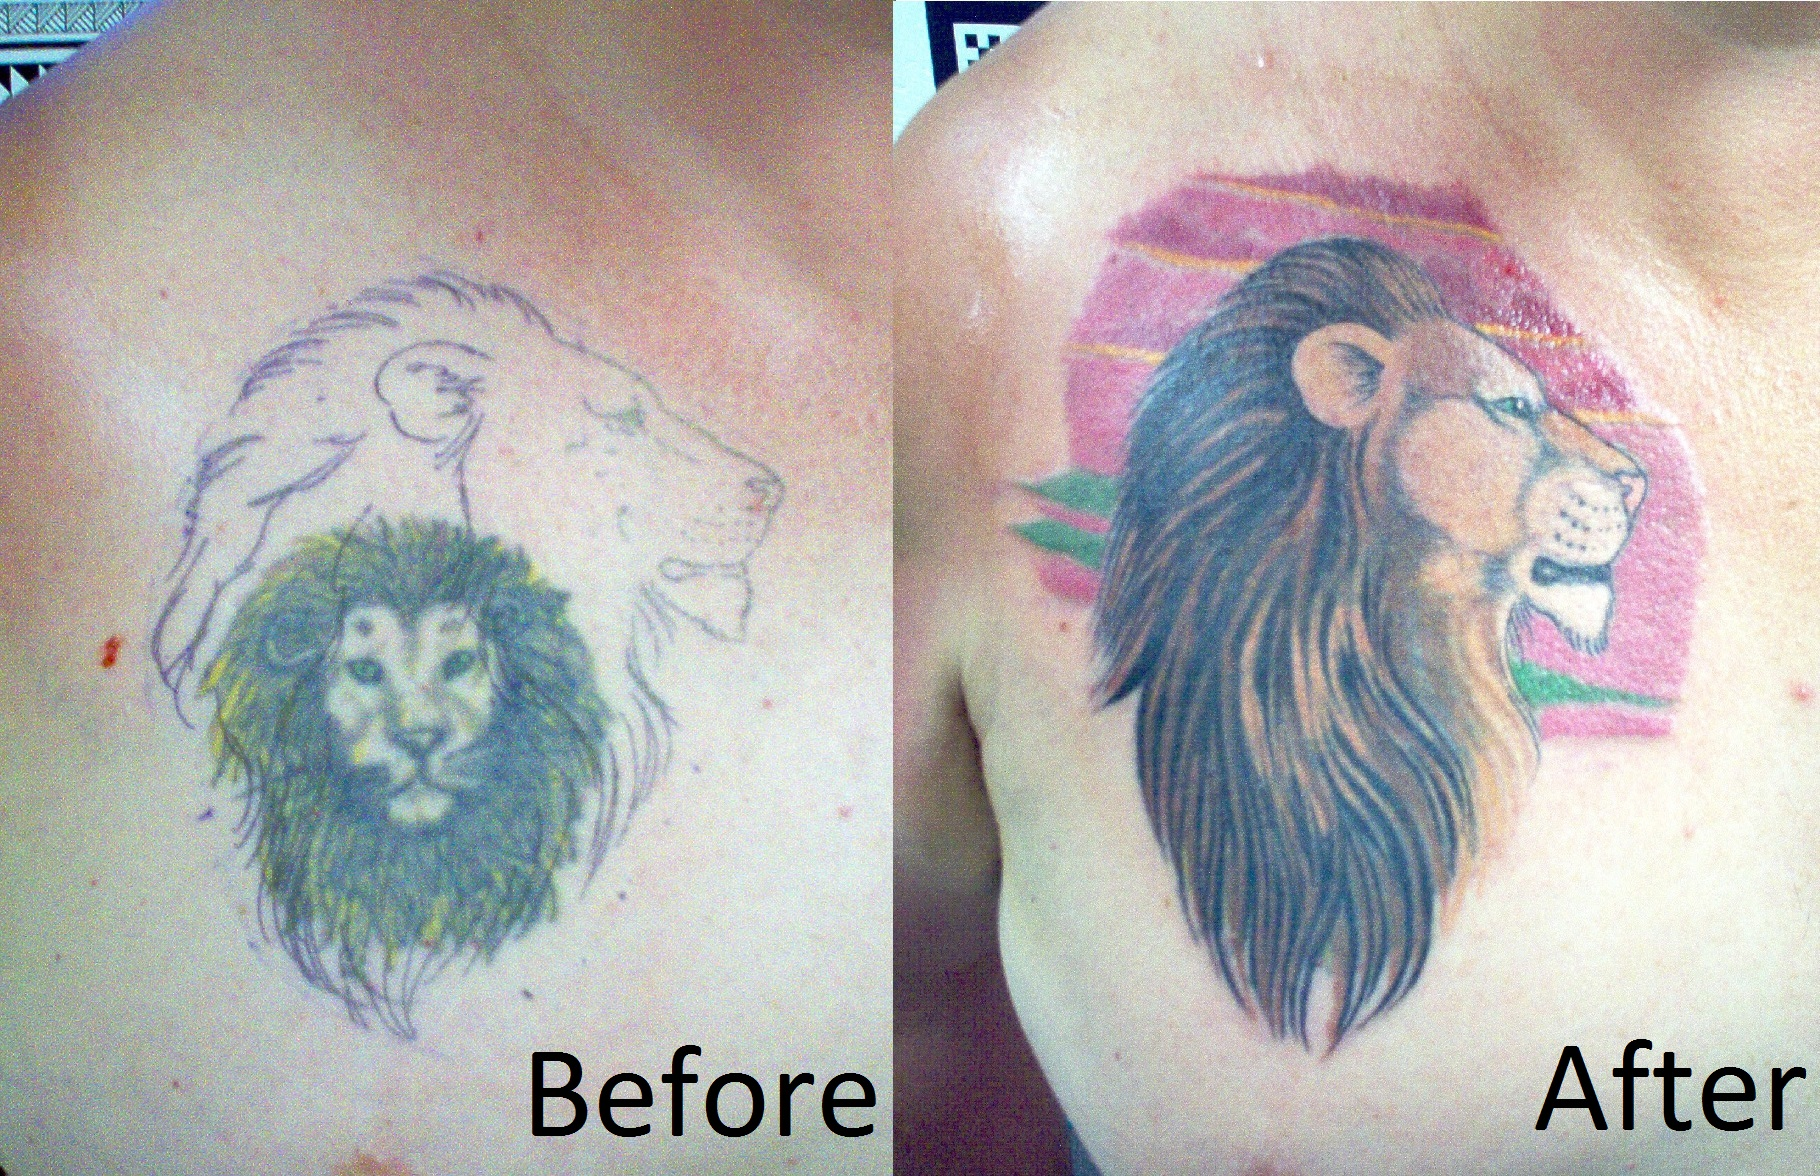 Fix The Worst Tattoos Of Your Life At Big Island Tattoo Ideas And Designs